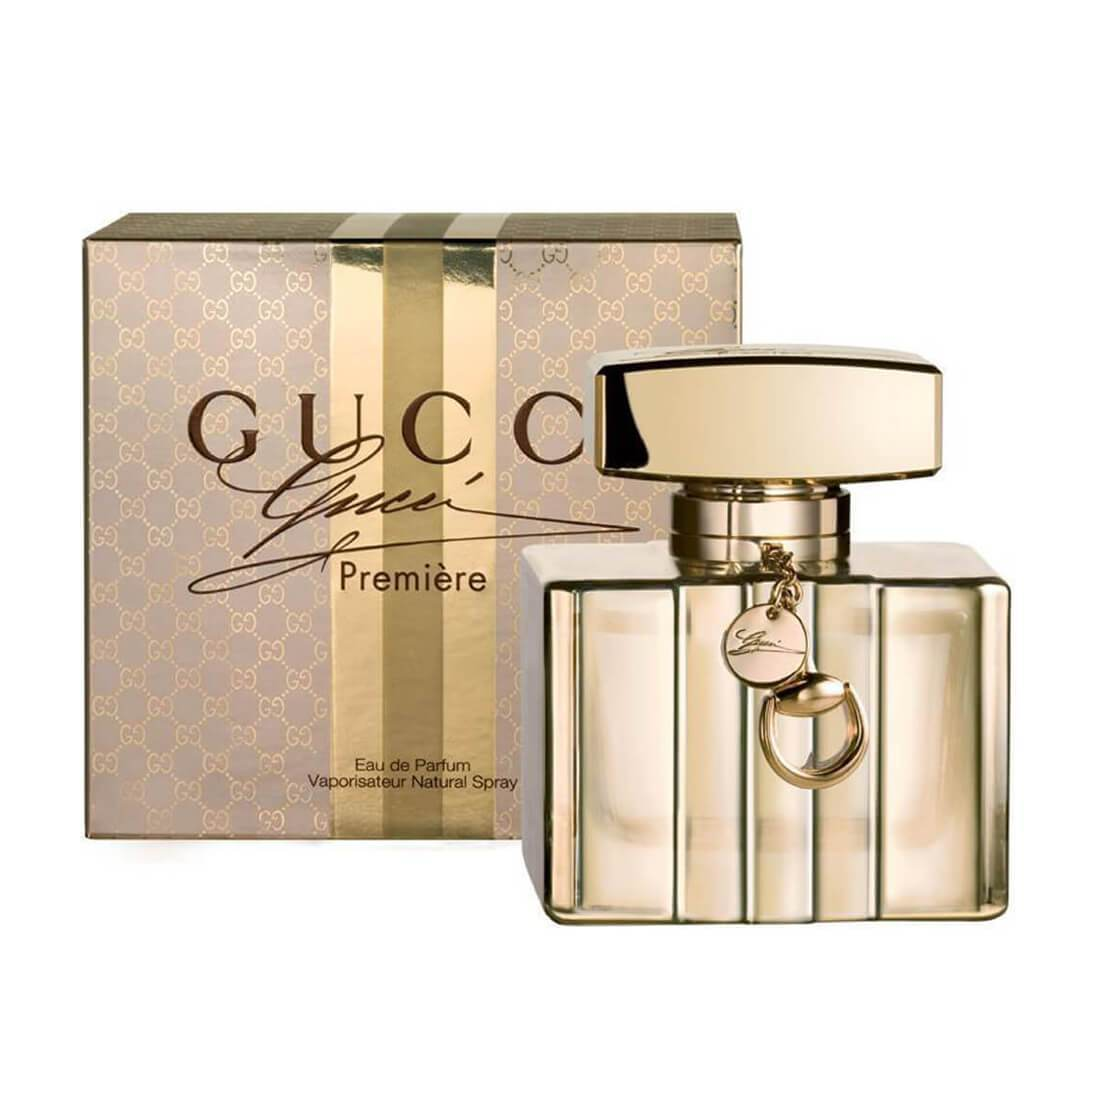 Gucci Premier EDP Perfume For Women - 75ml